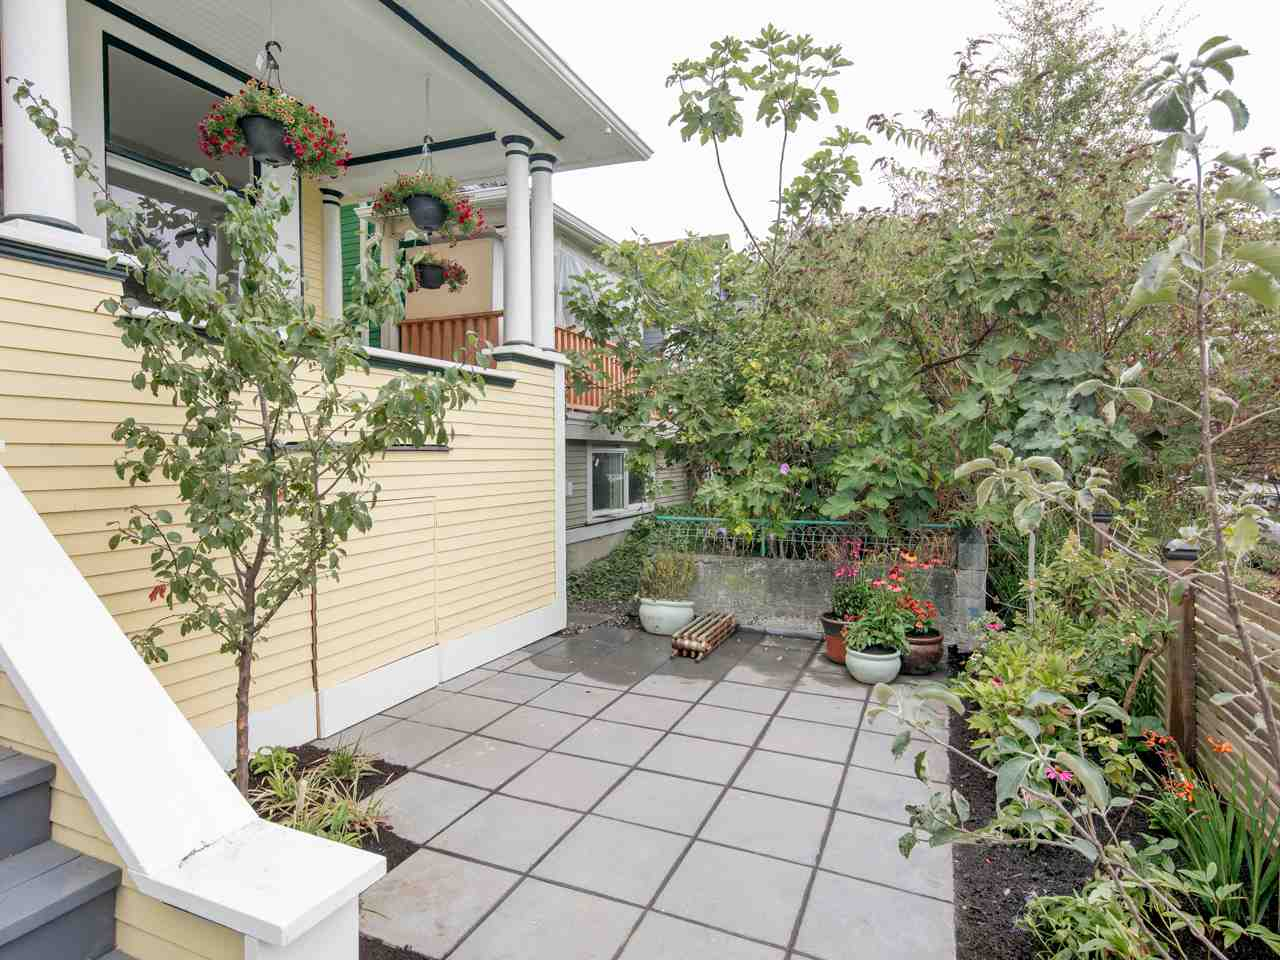 Photo 2: 1137 E PENDER Street in Vancouver: Mount Pleasant VE House for sale (Vancouver East)  : MLS® # R2204220